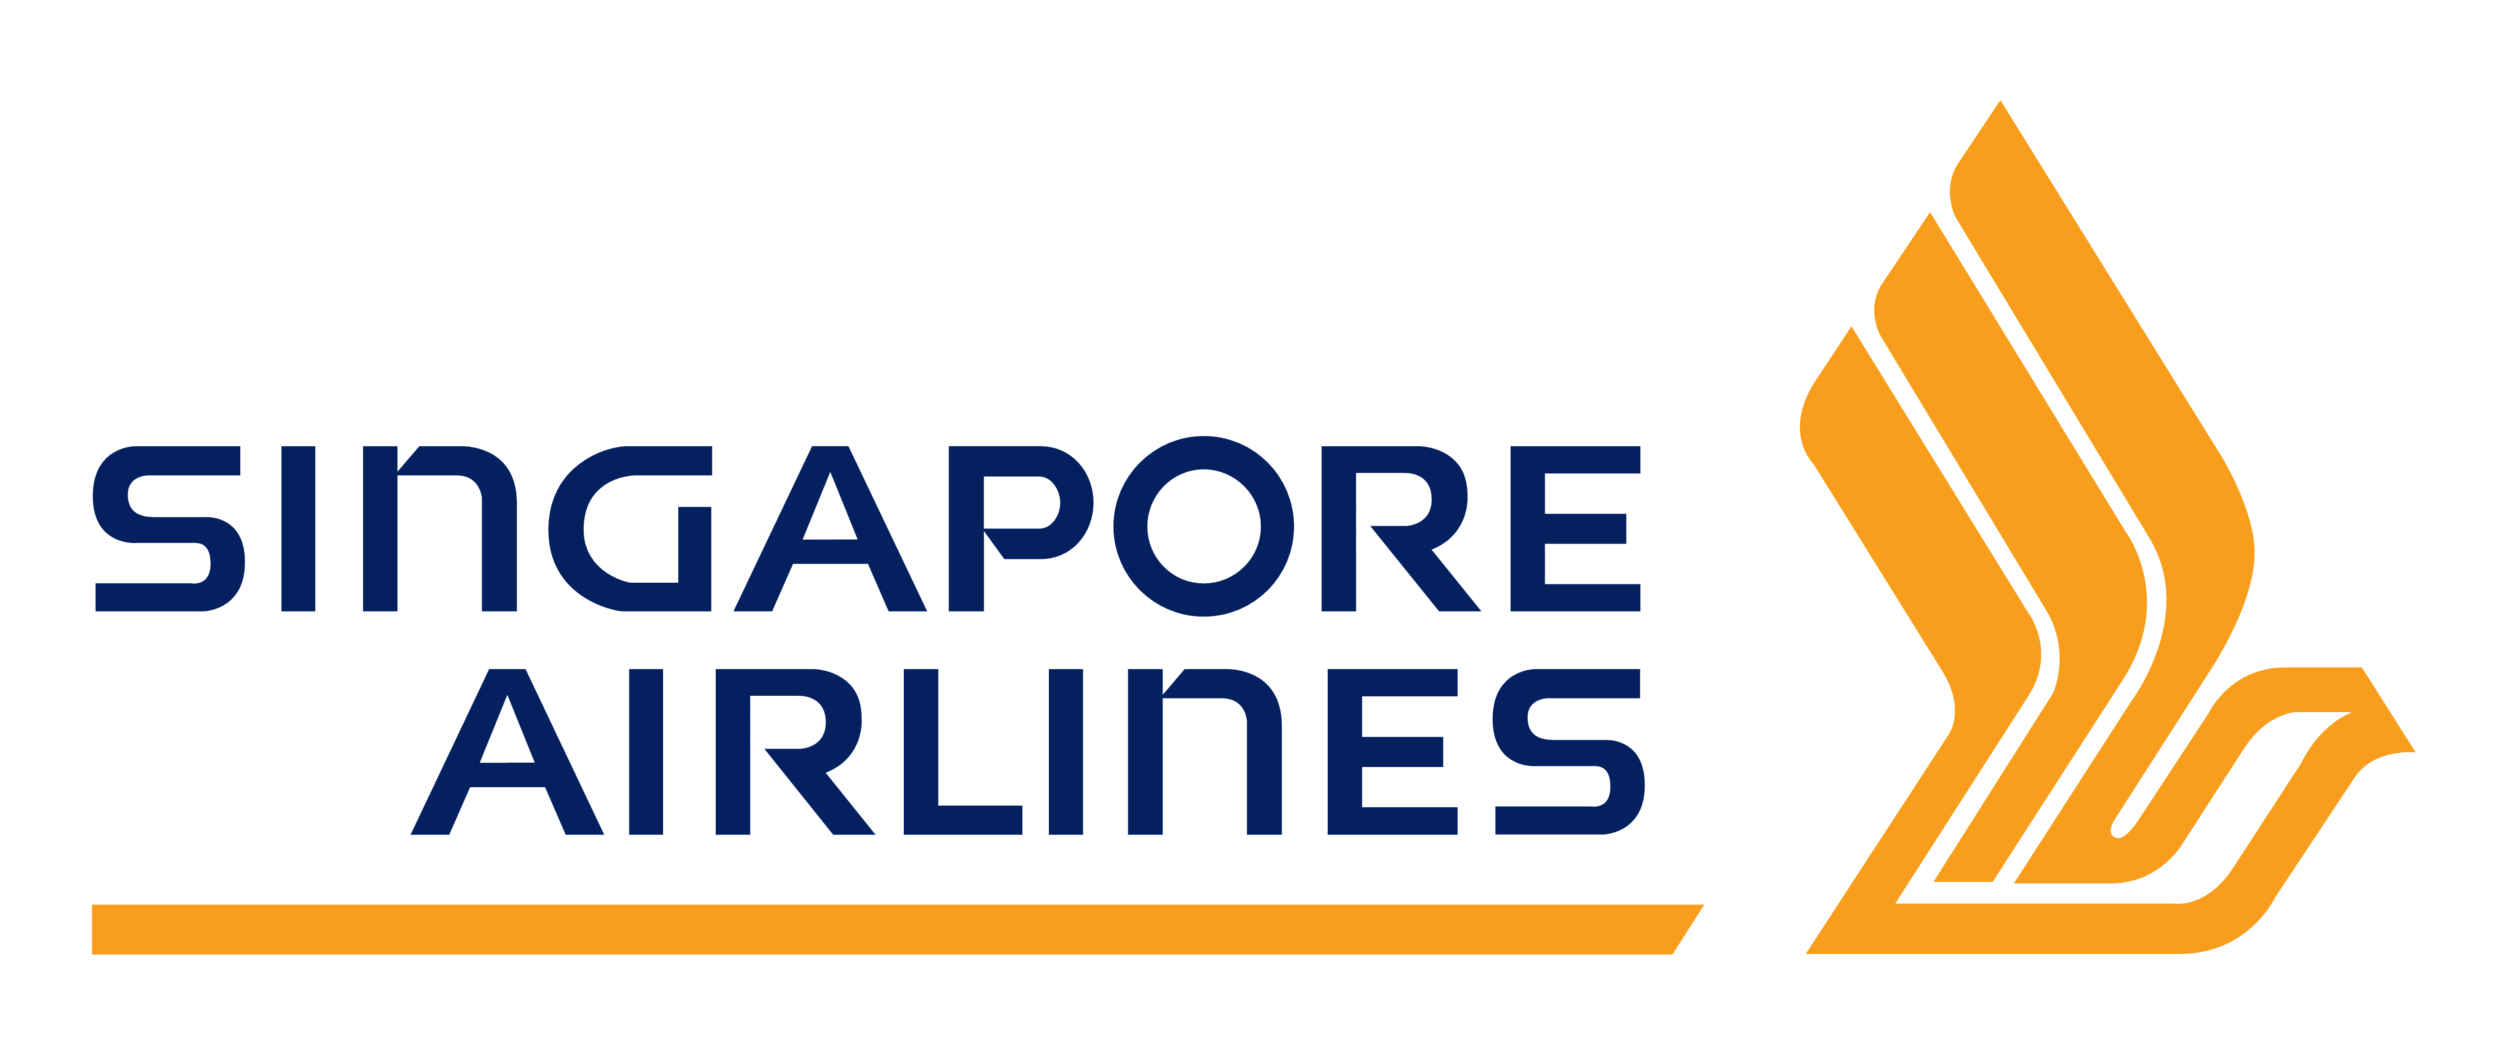 logo-singapore-airlines-png--4600.png